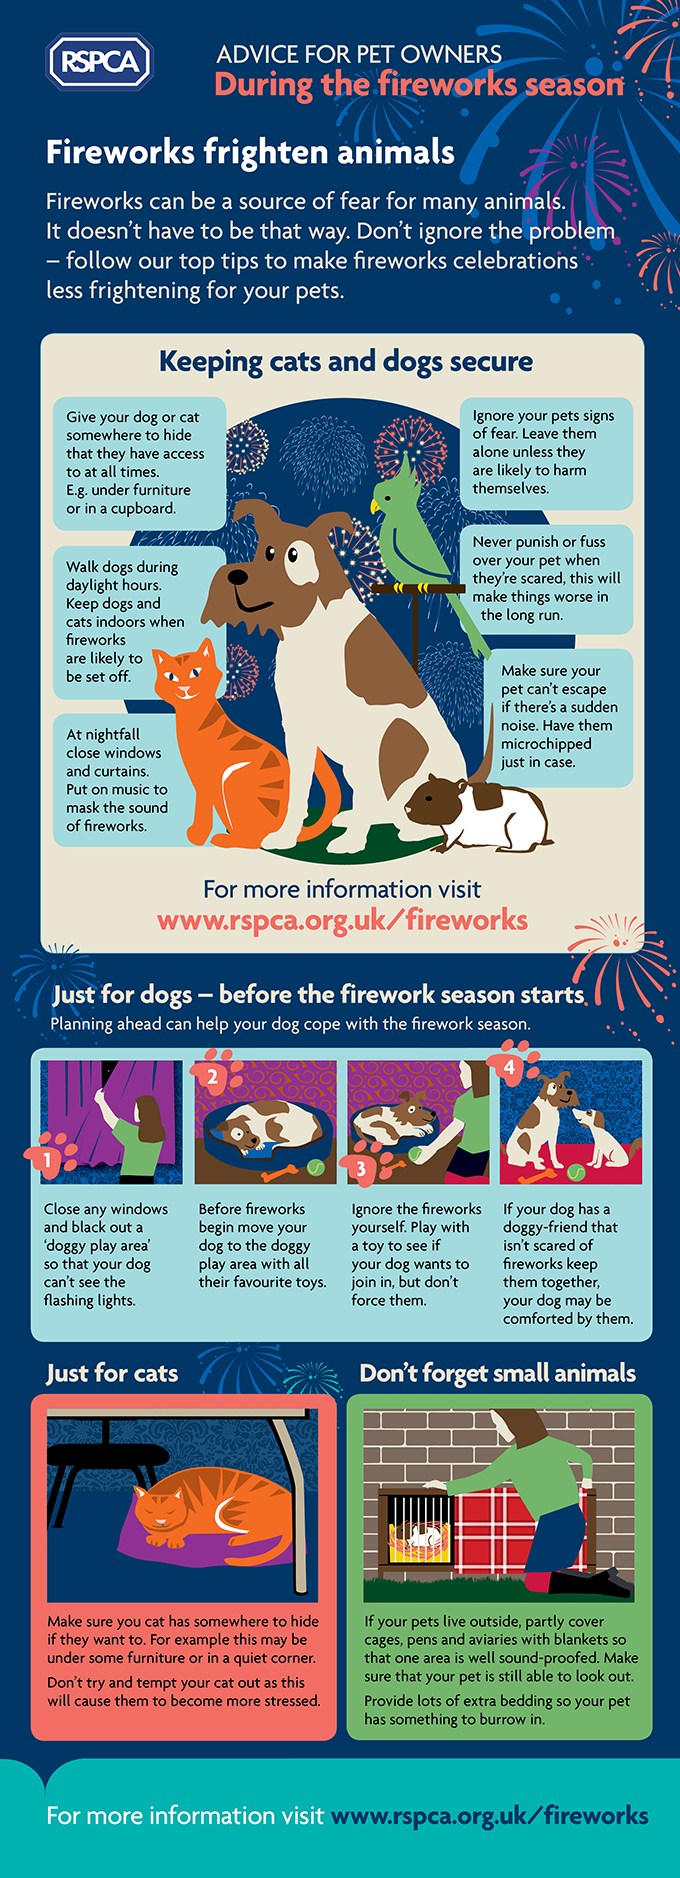 How to Keep your pets safe during the fireworks season